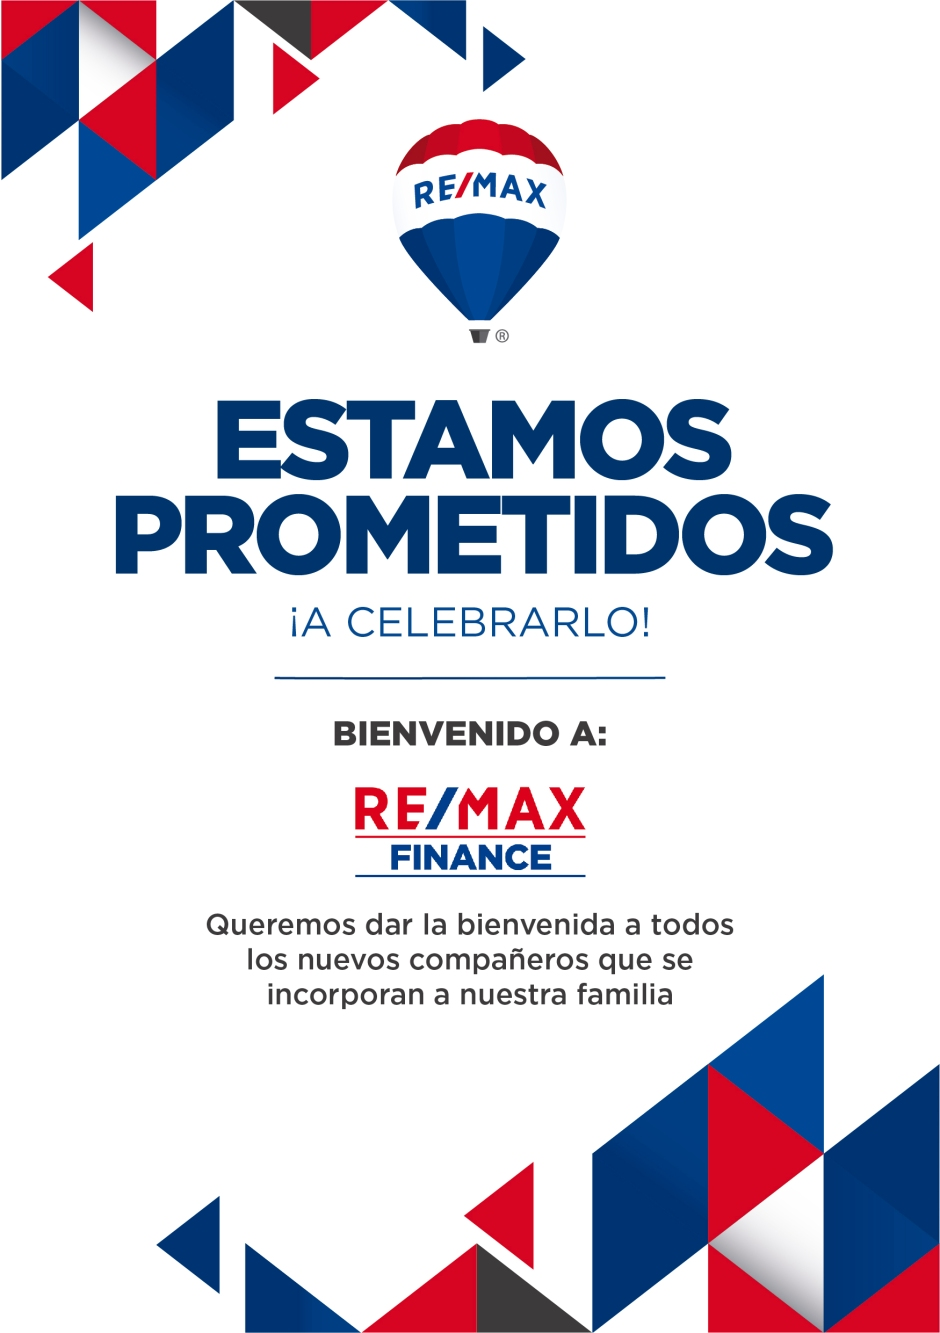 flyer-estamos-prometidos-remax-finance